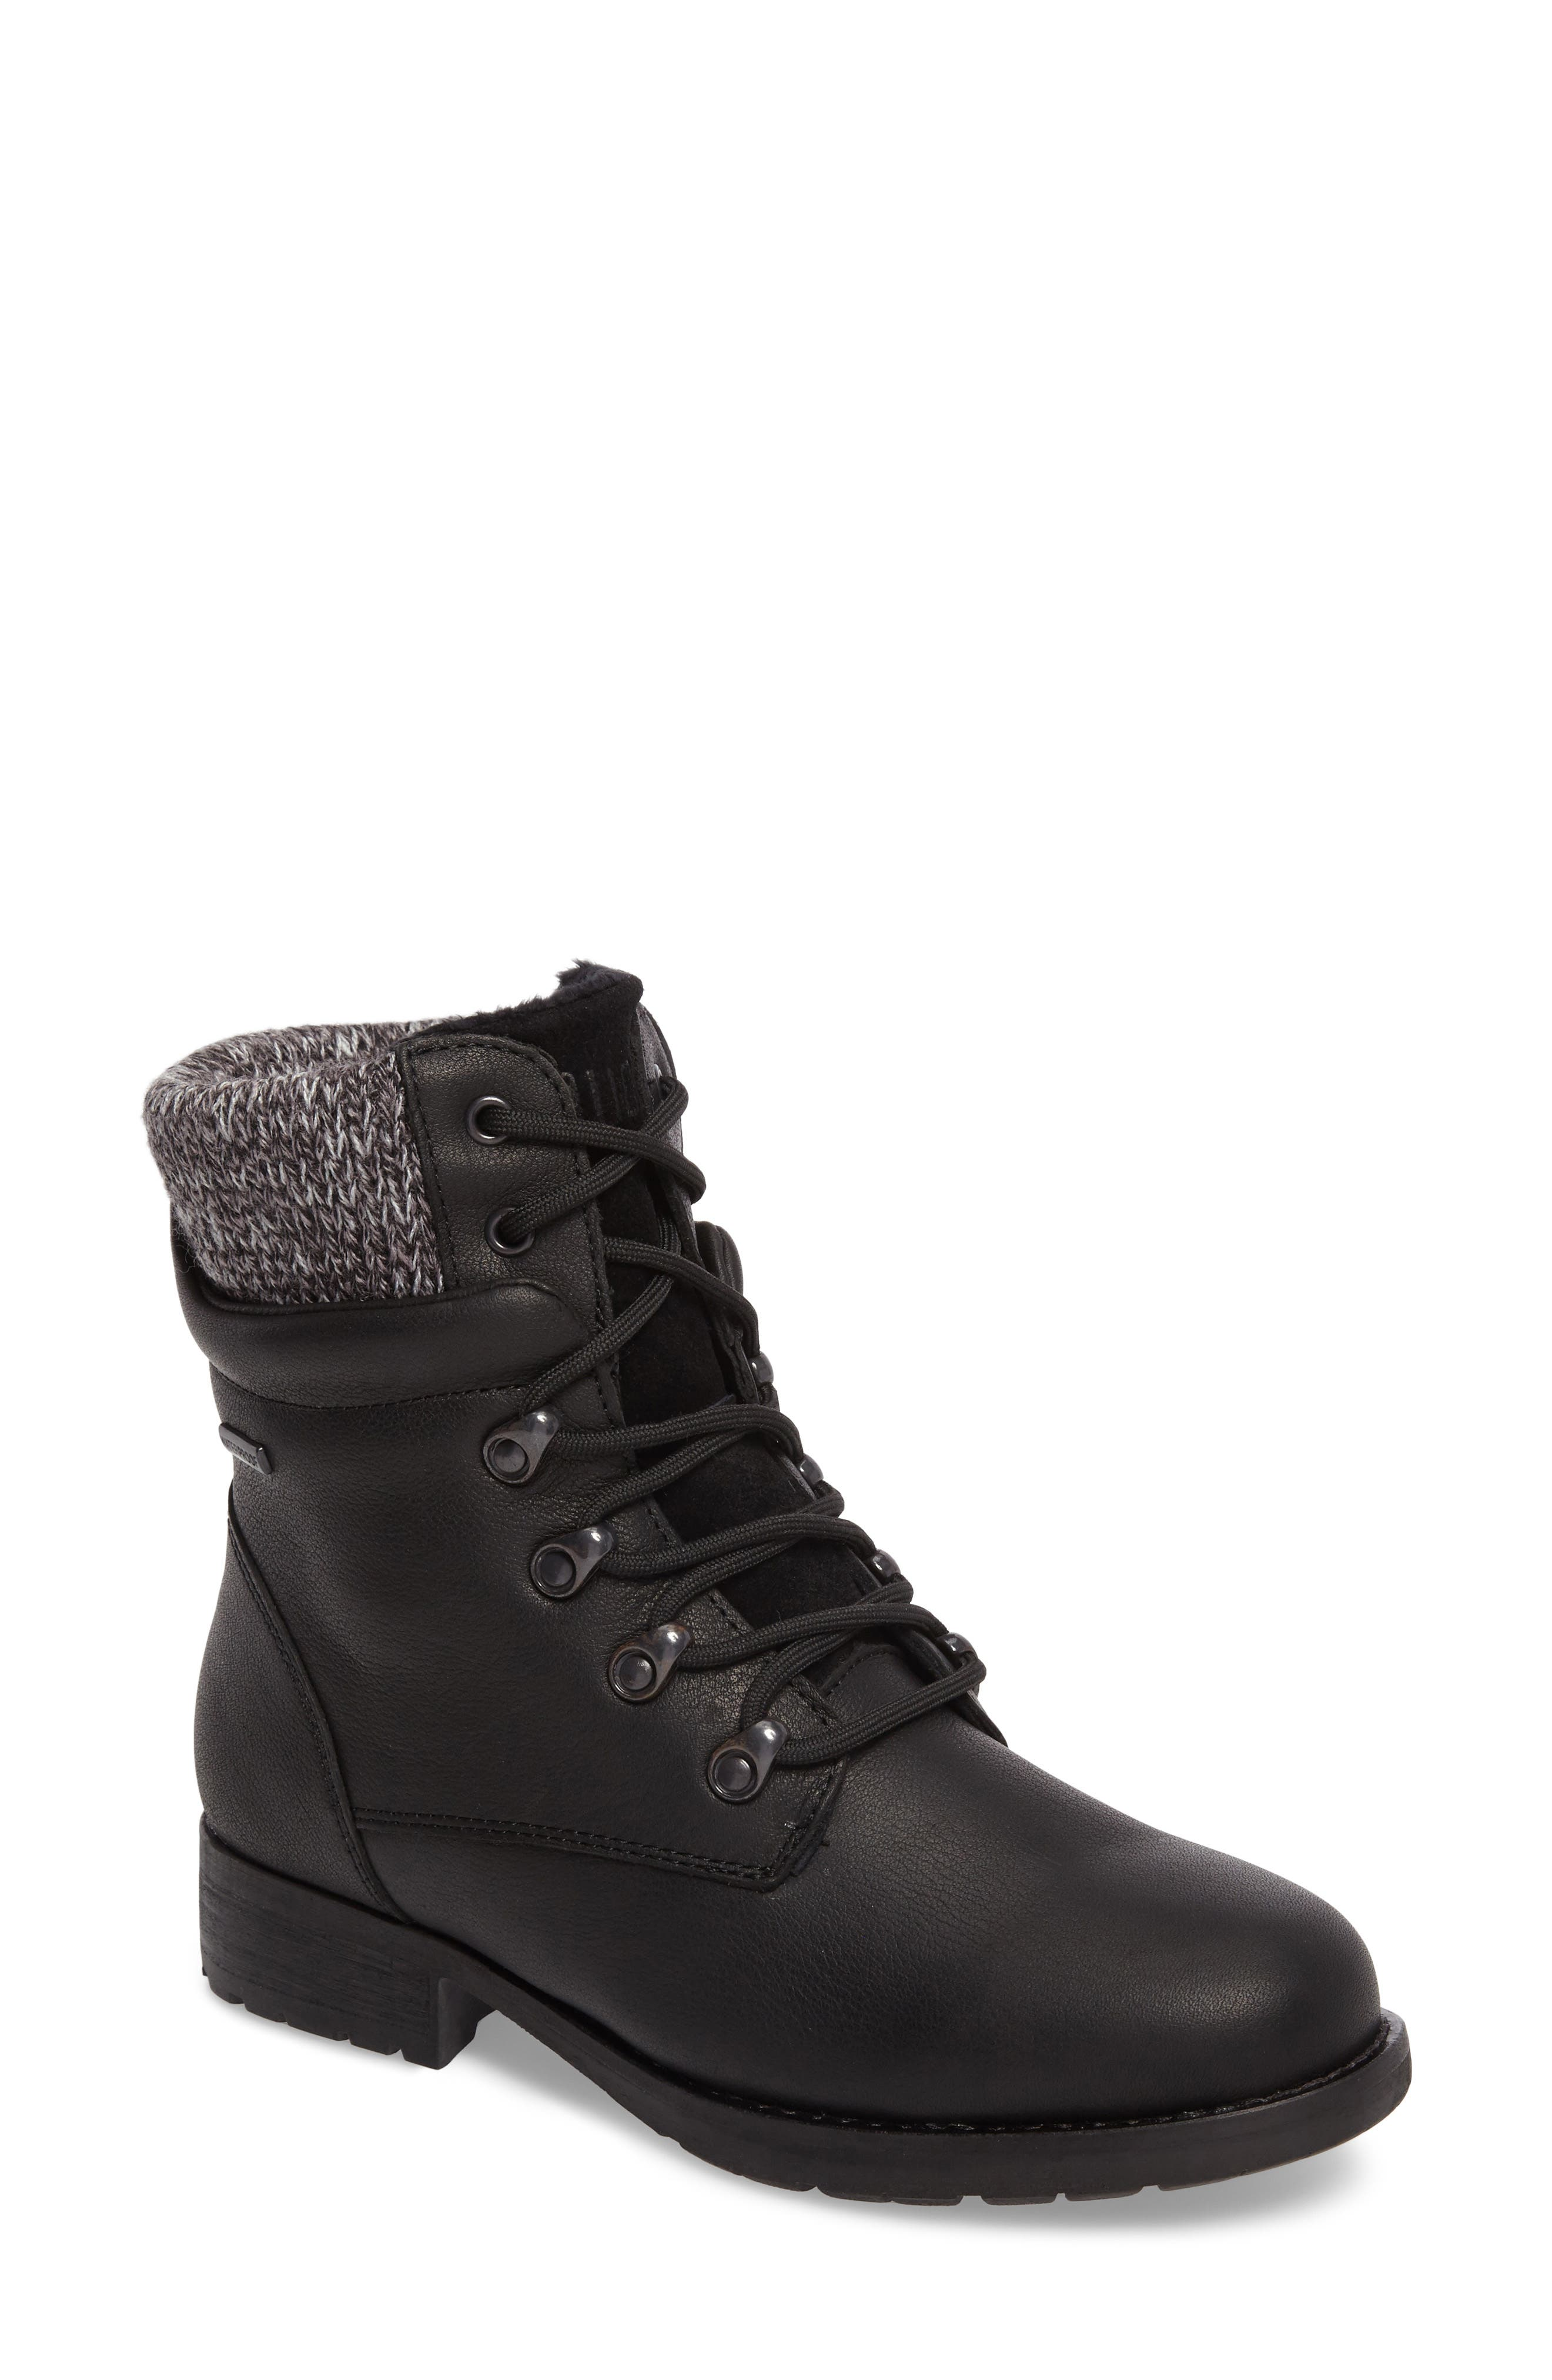 Derry Waterproof Boot,                         Main,                         color, BLACK LEATHER